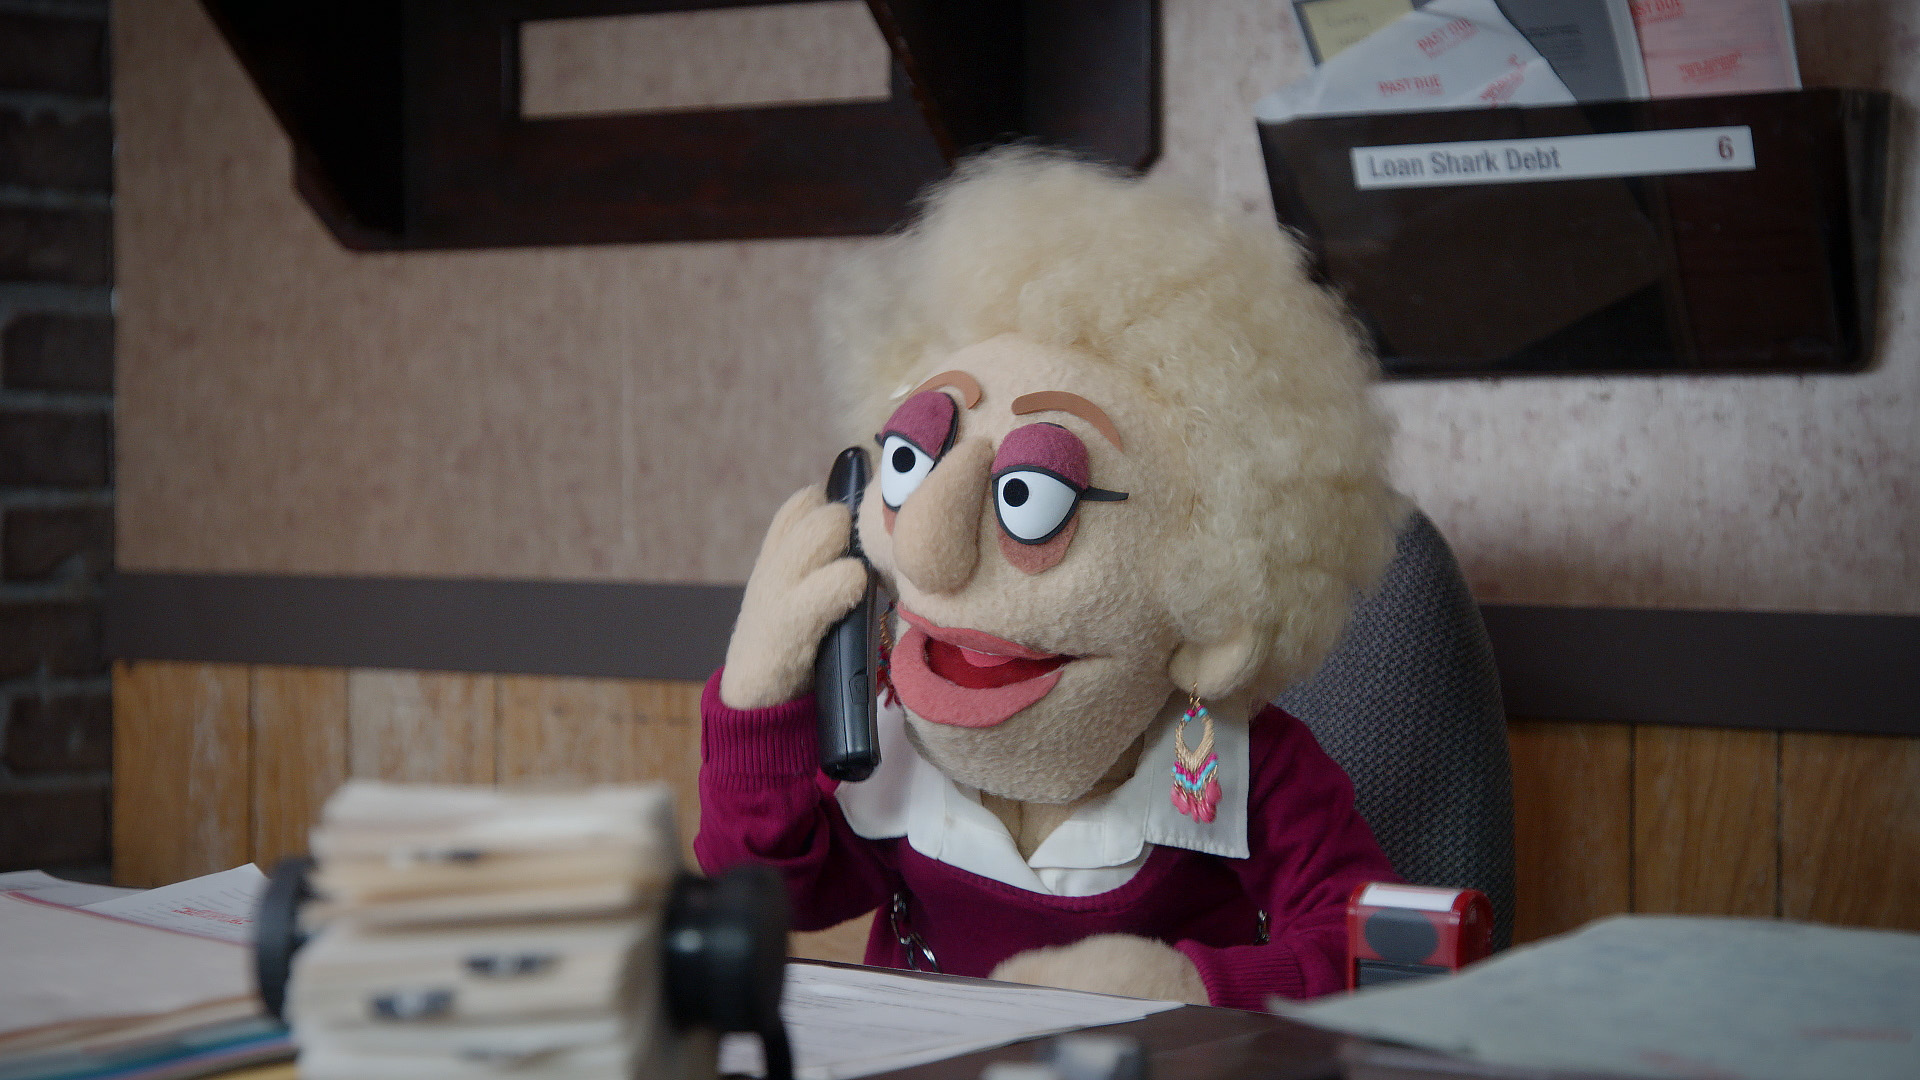 Female debt collector talks to Bobby Fletcher from a scene from Crank Yankers directed by Todd Bishop